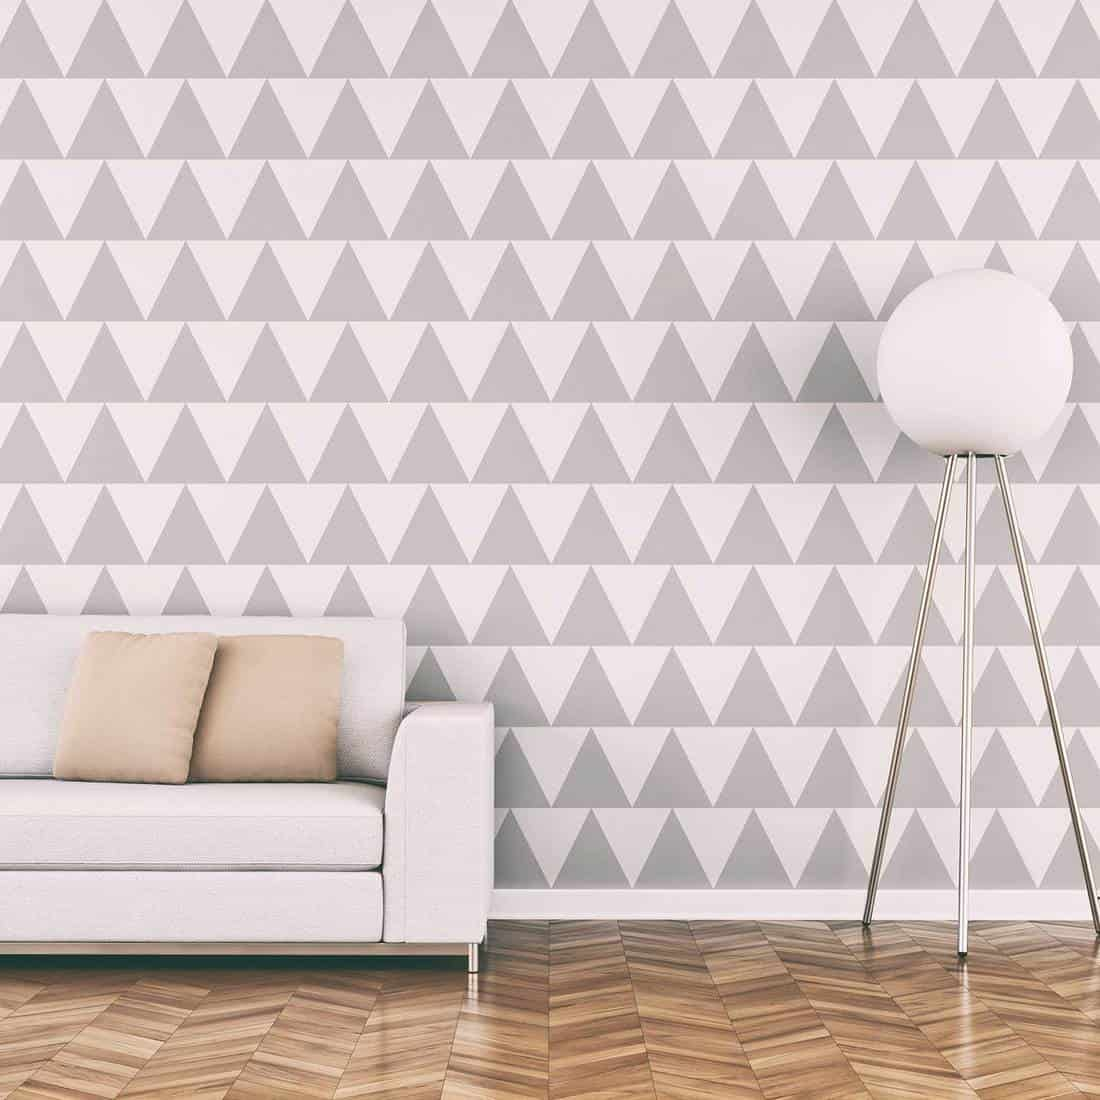 Elegant living room 50's style with sofa wallpaper background